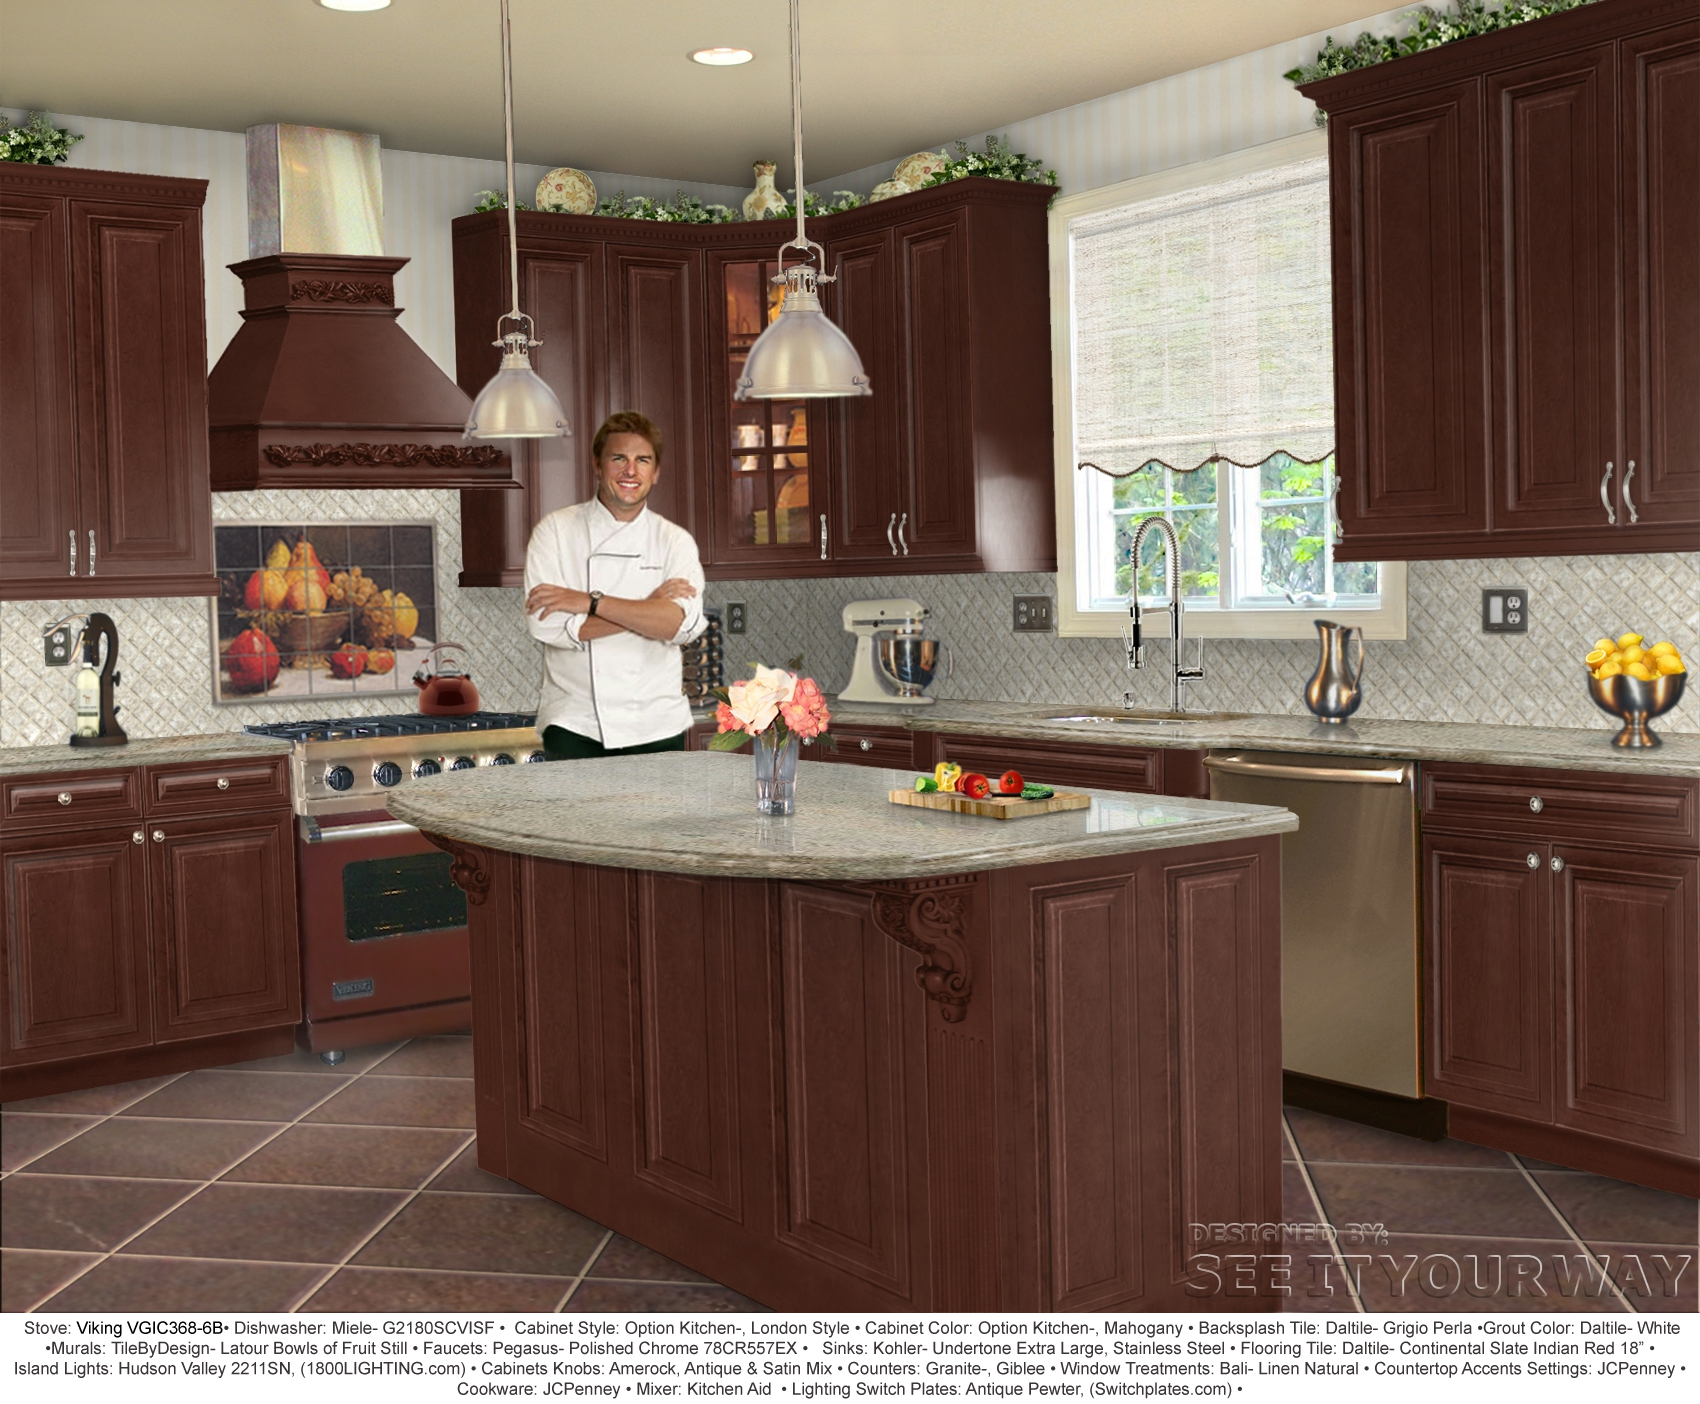 Http Www Prweb Com Releases Home Design Kitchen Prweb1211454 Htm